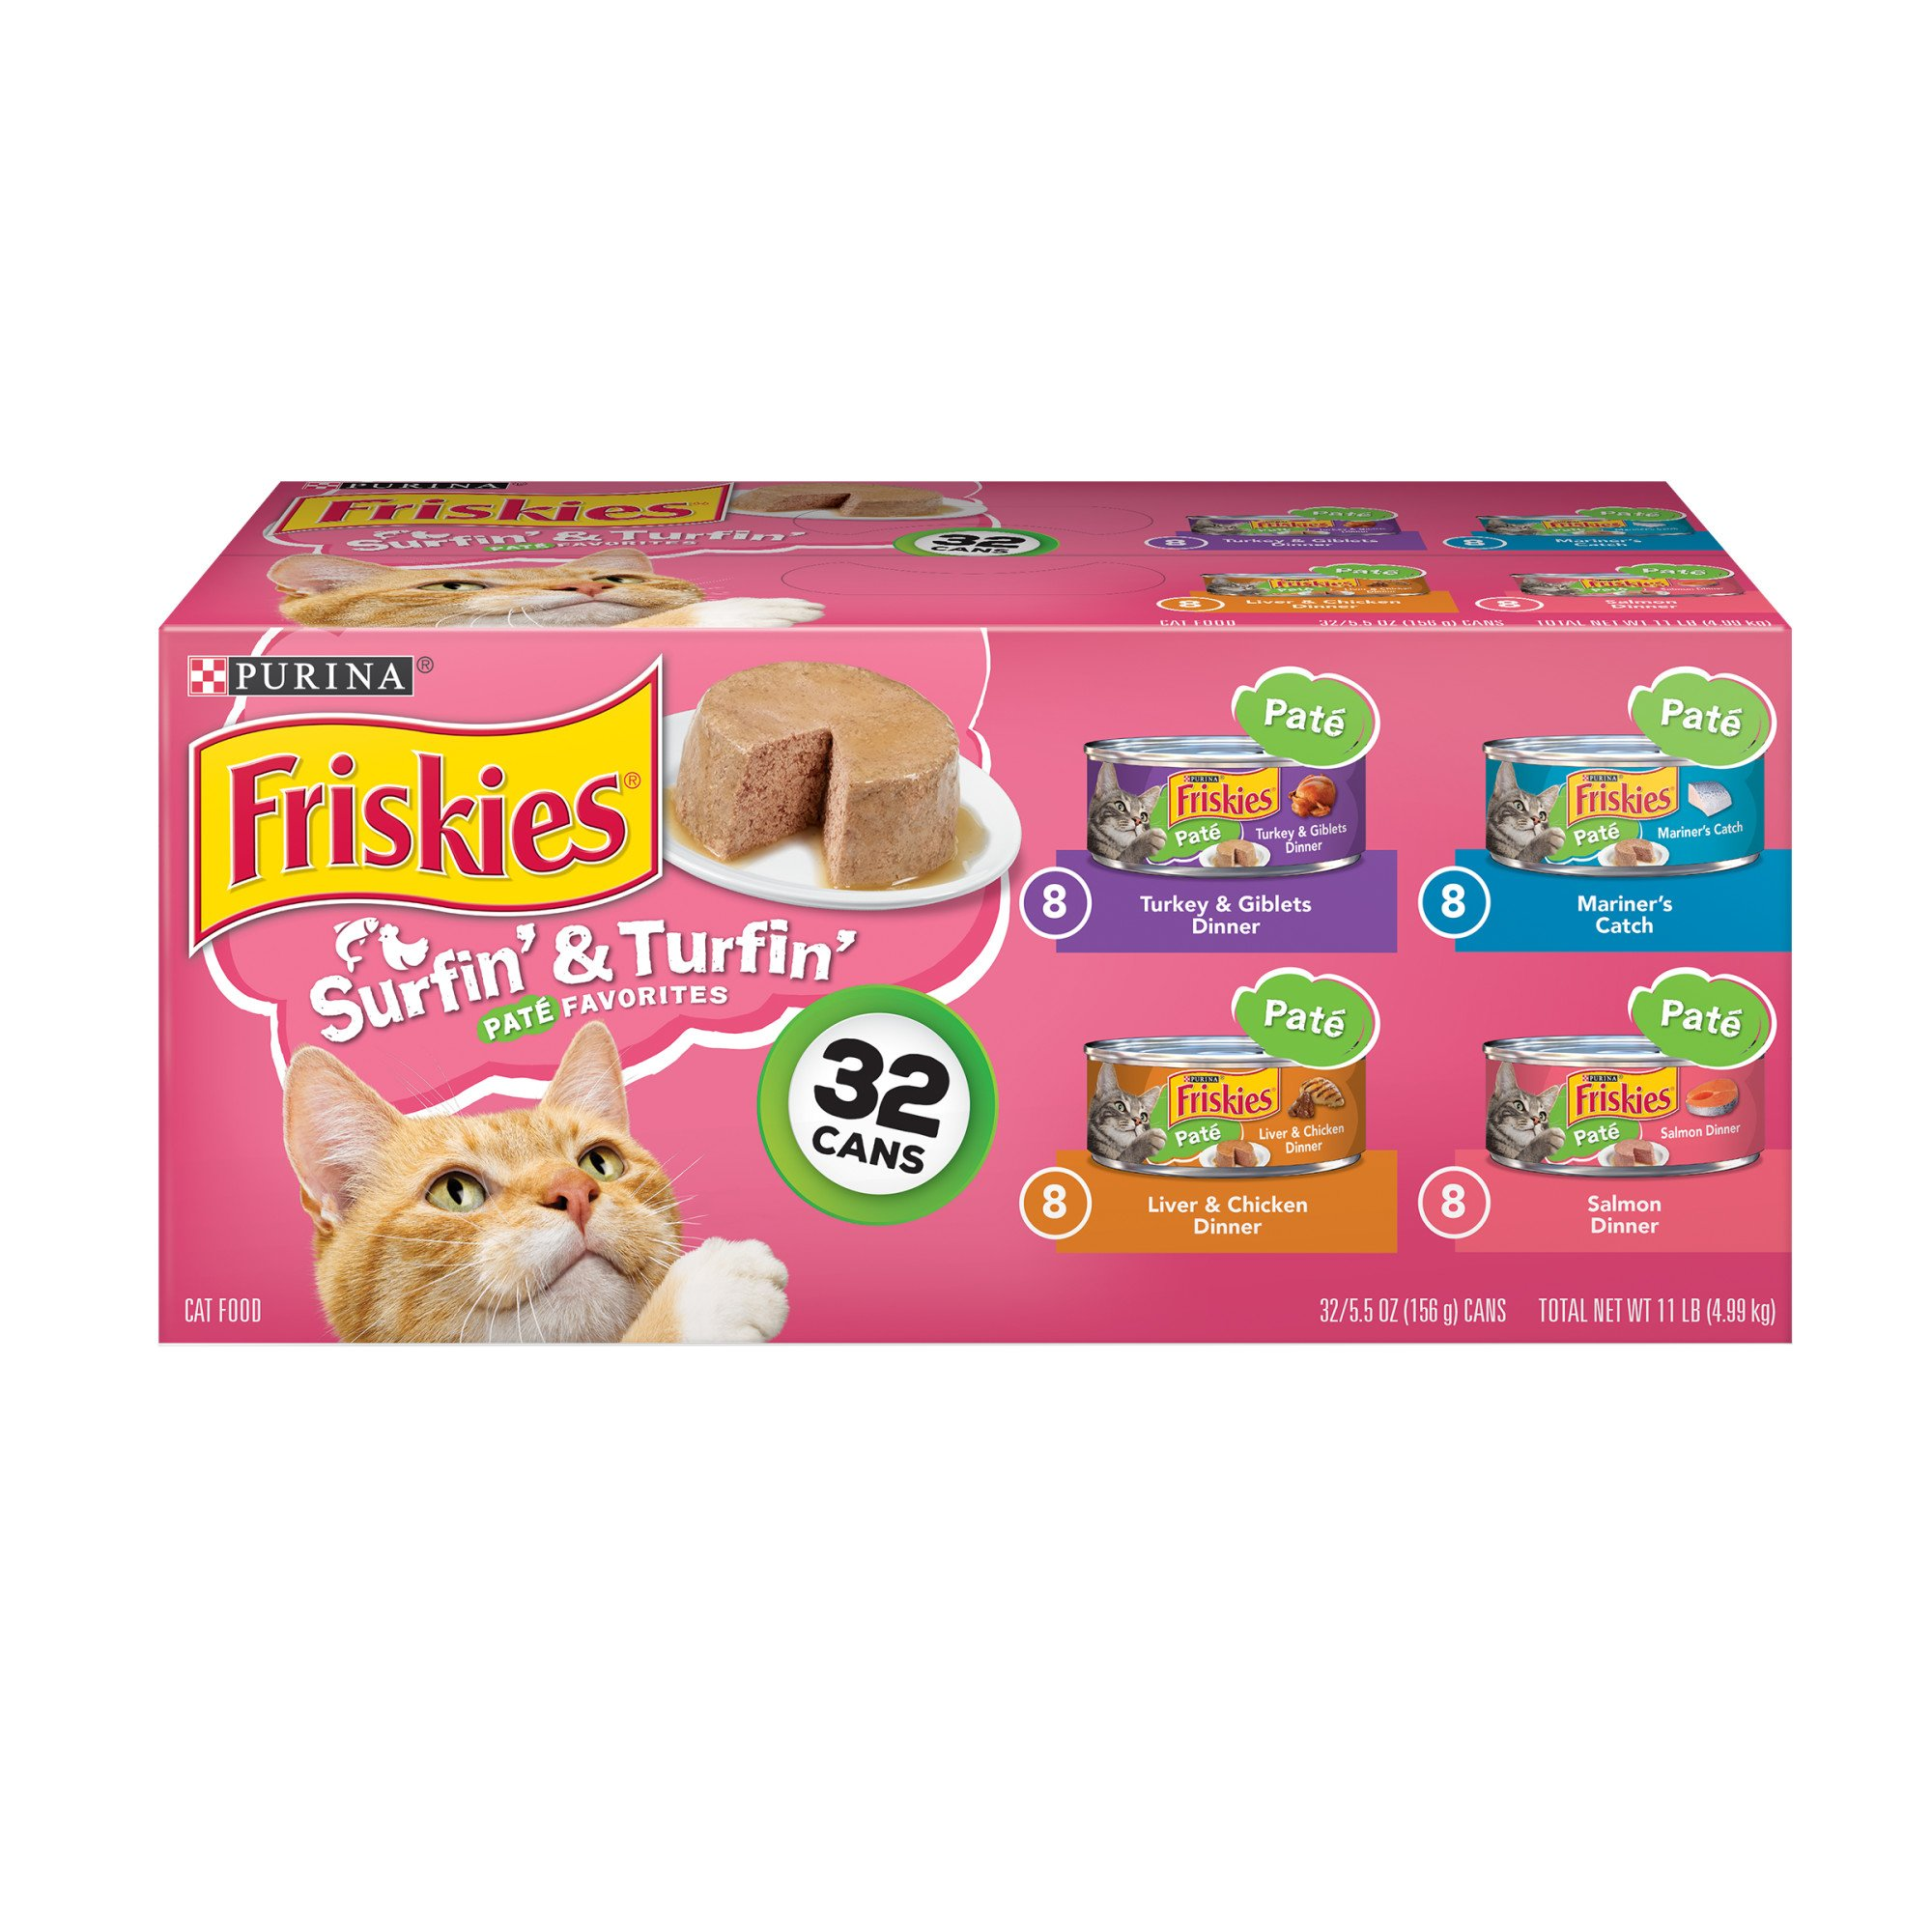 Purina Friskies Pate Surfin' & Turfin' Favorites Wet Cat Food Variety Pack, 5.5 oz., Count of 32